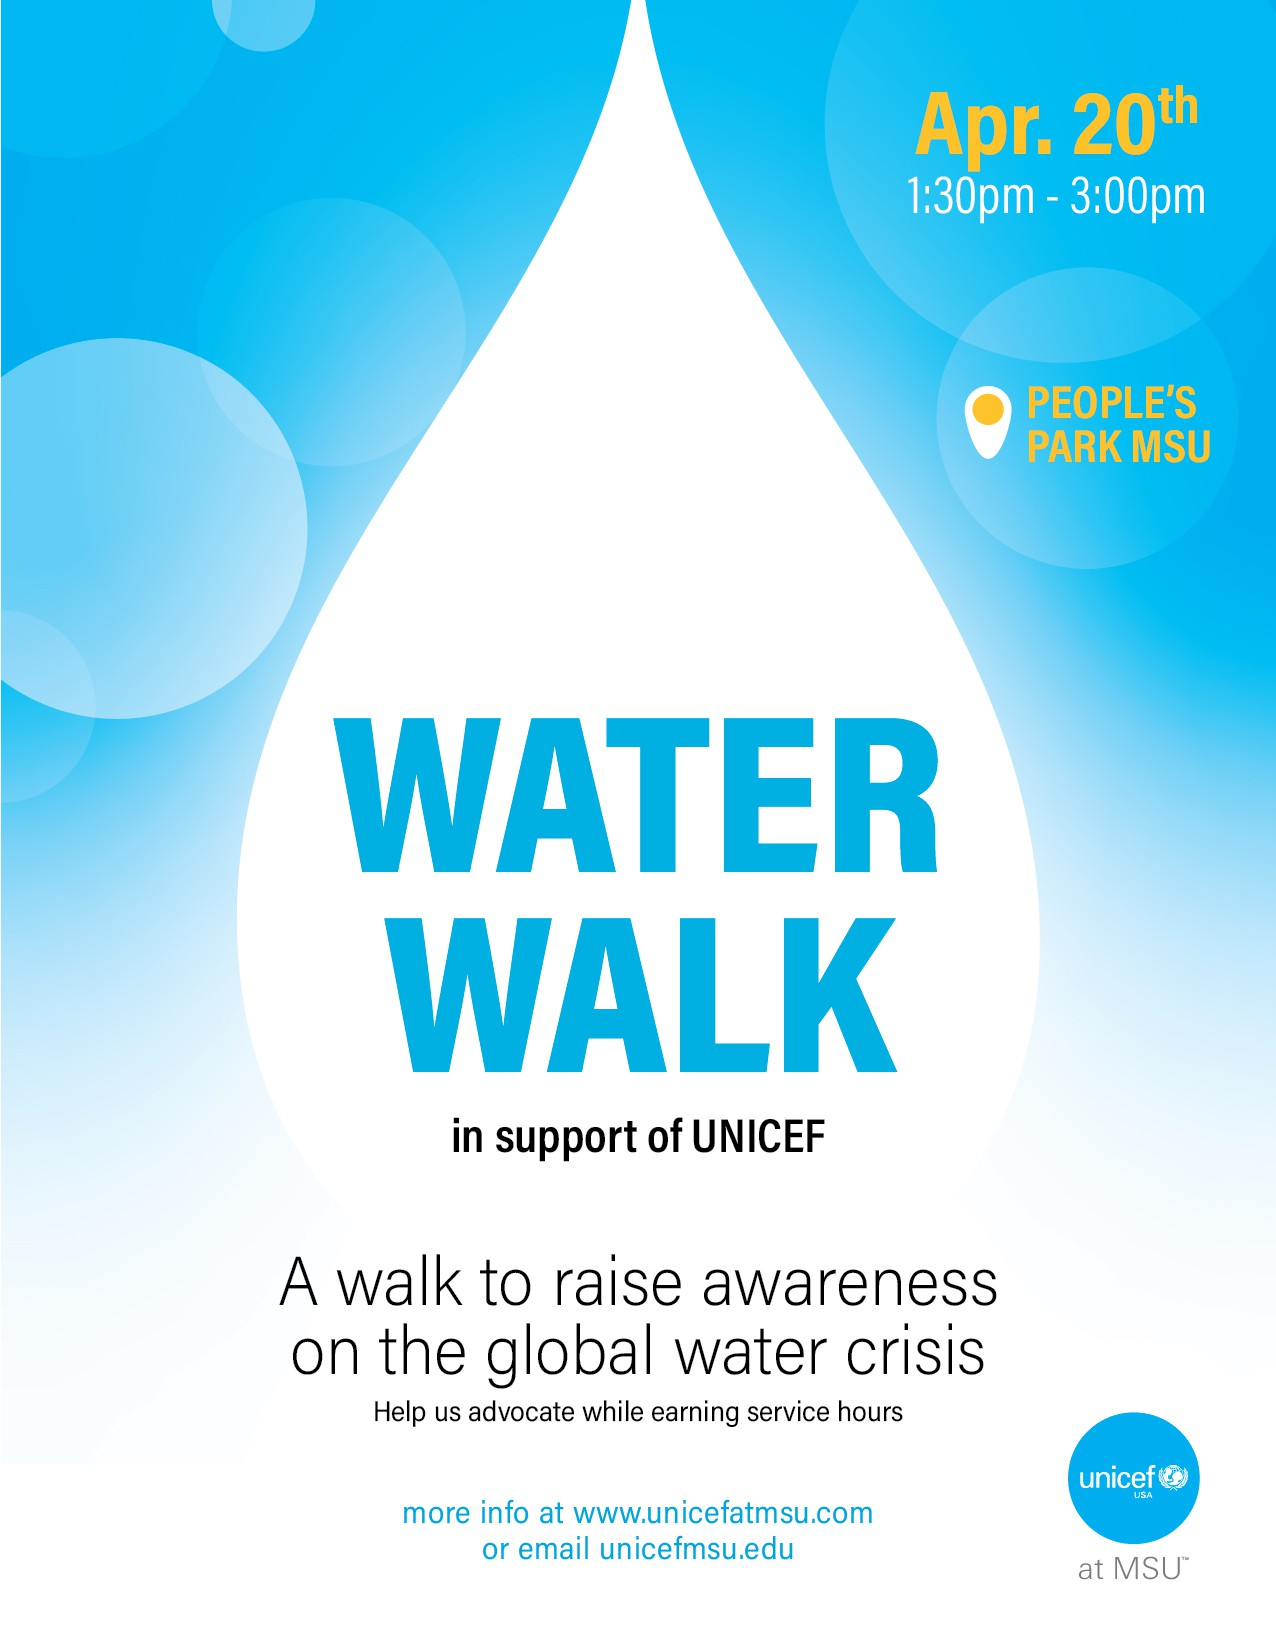 UNICEF Water Walk